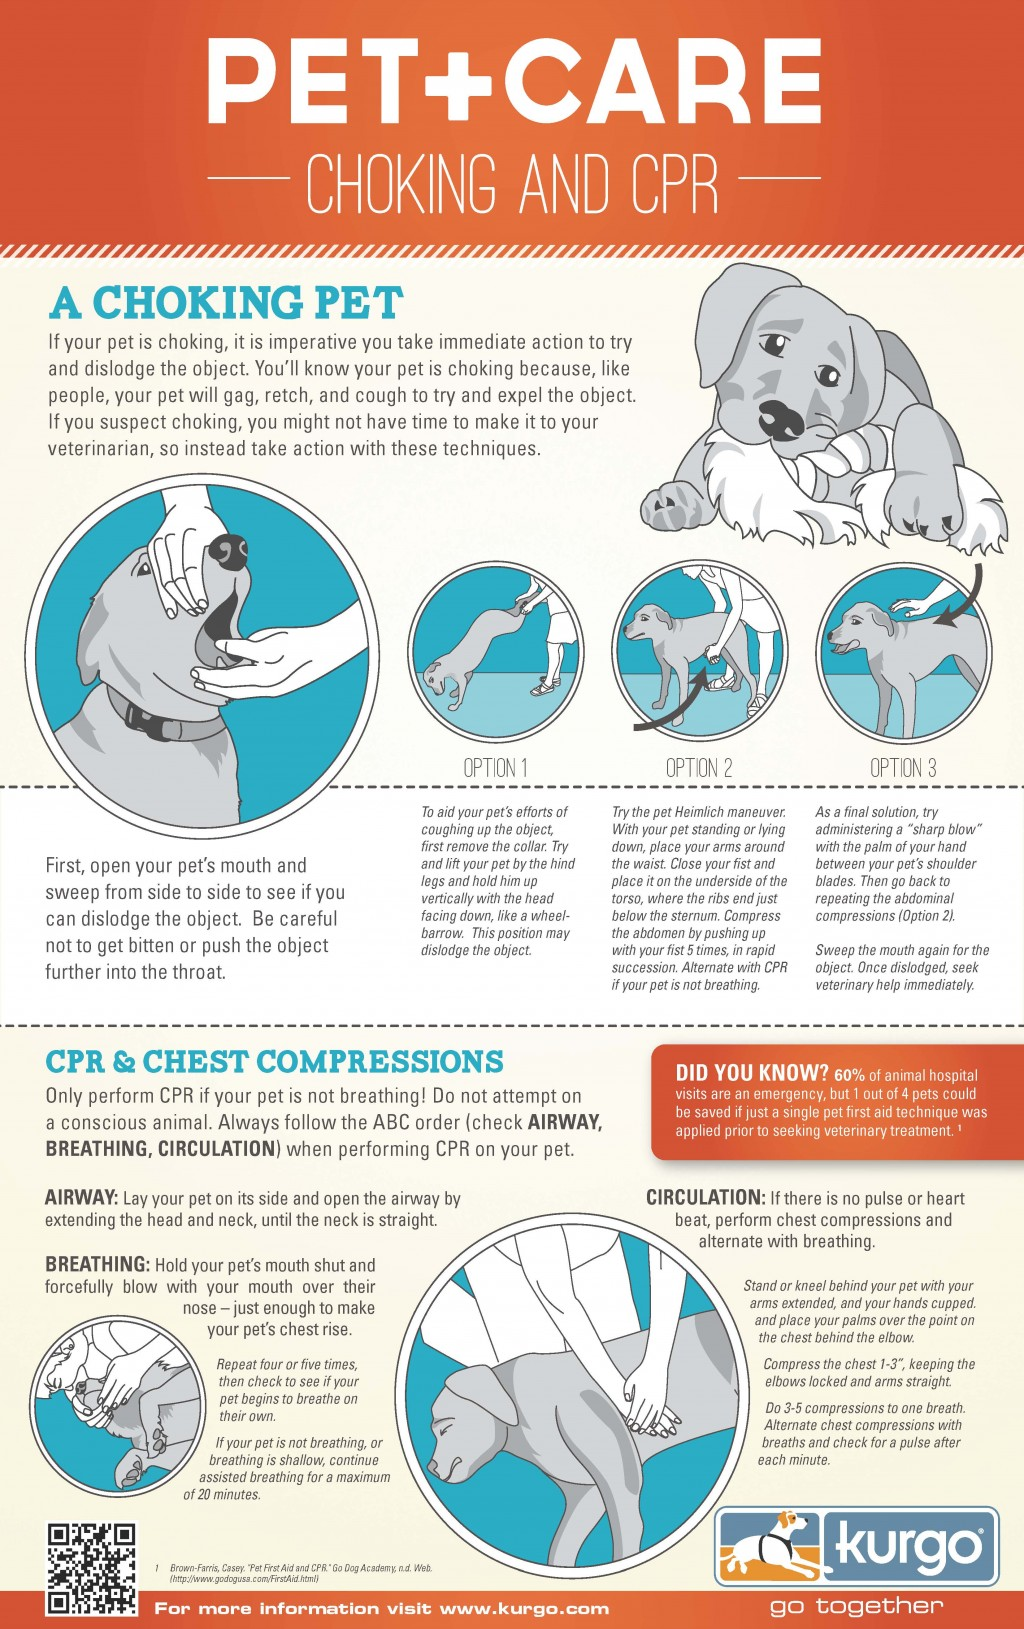 First-aid & CPR For a Choking Dog